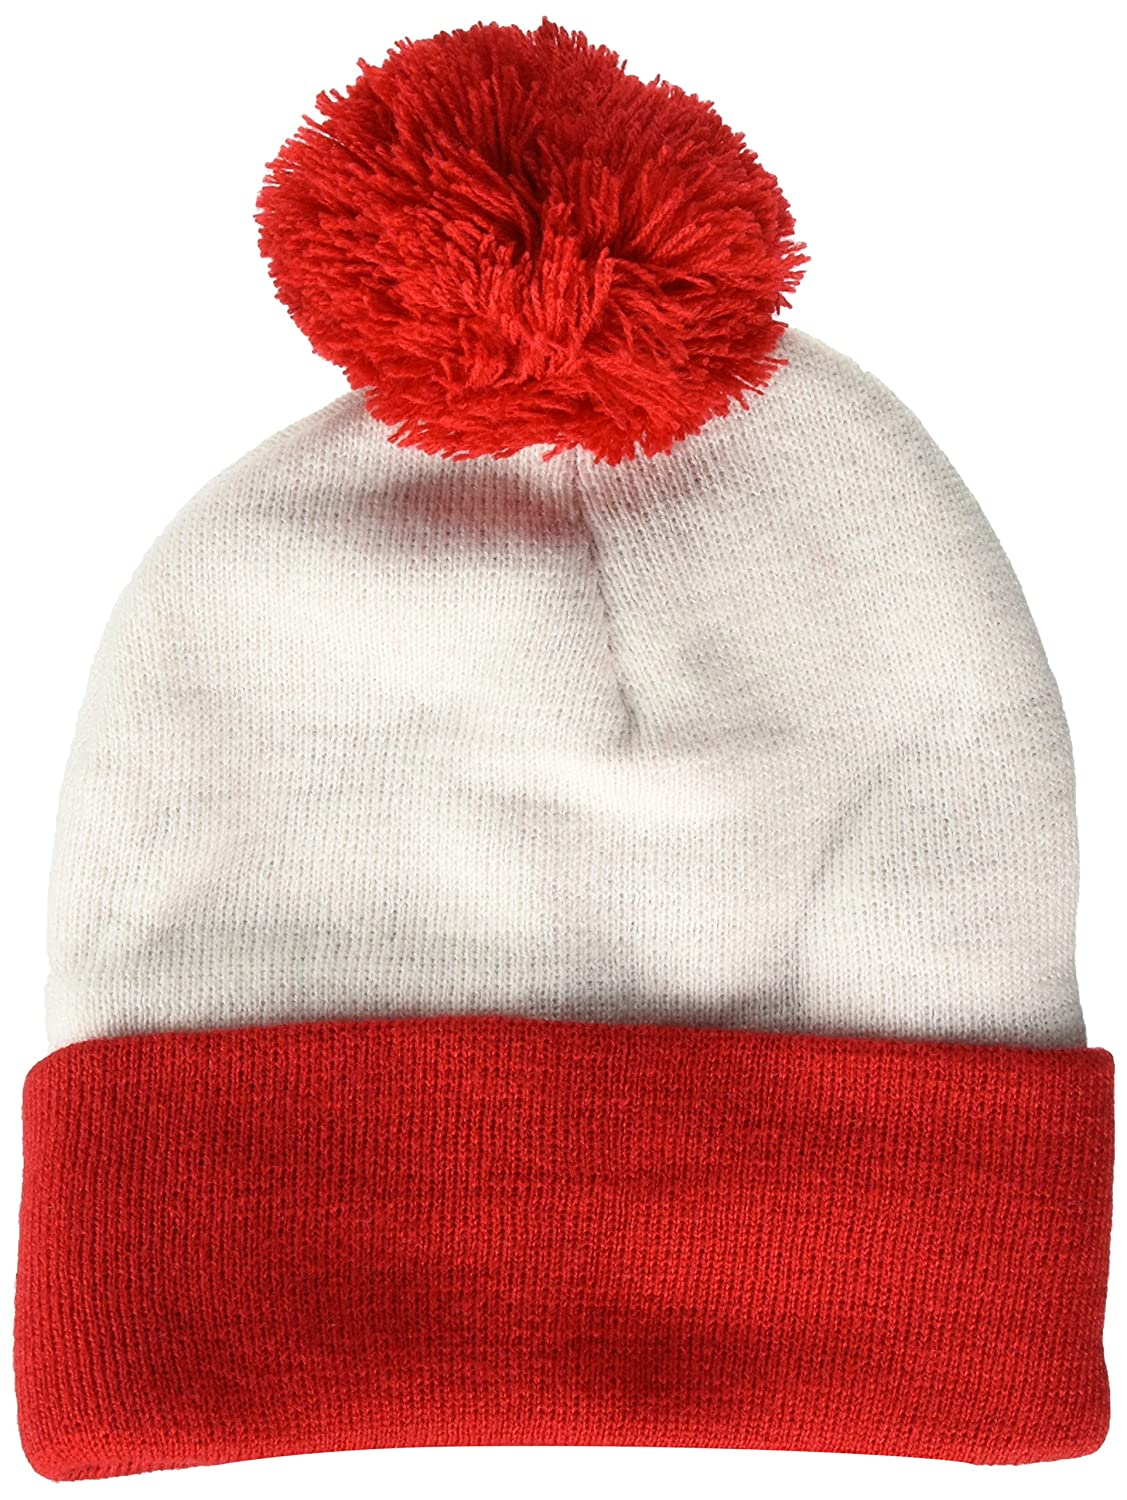 Beechfield B451 Snowstar Duo Two Tone Beanie Hat Black One Size B451.OWH-FNA